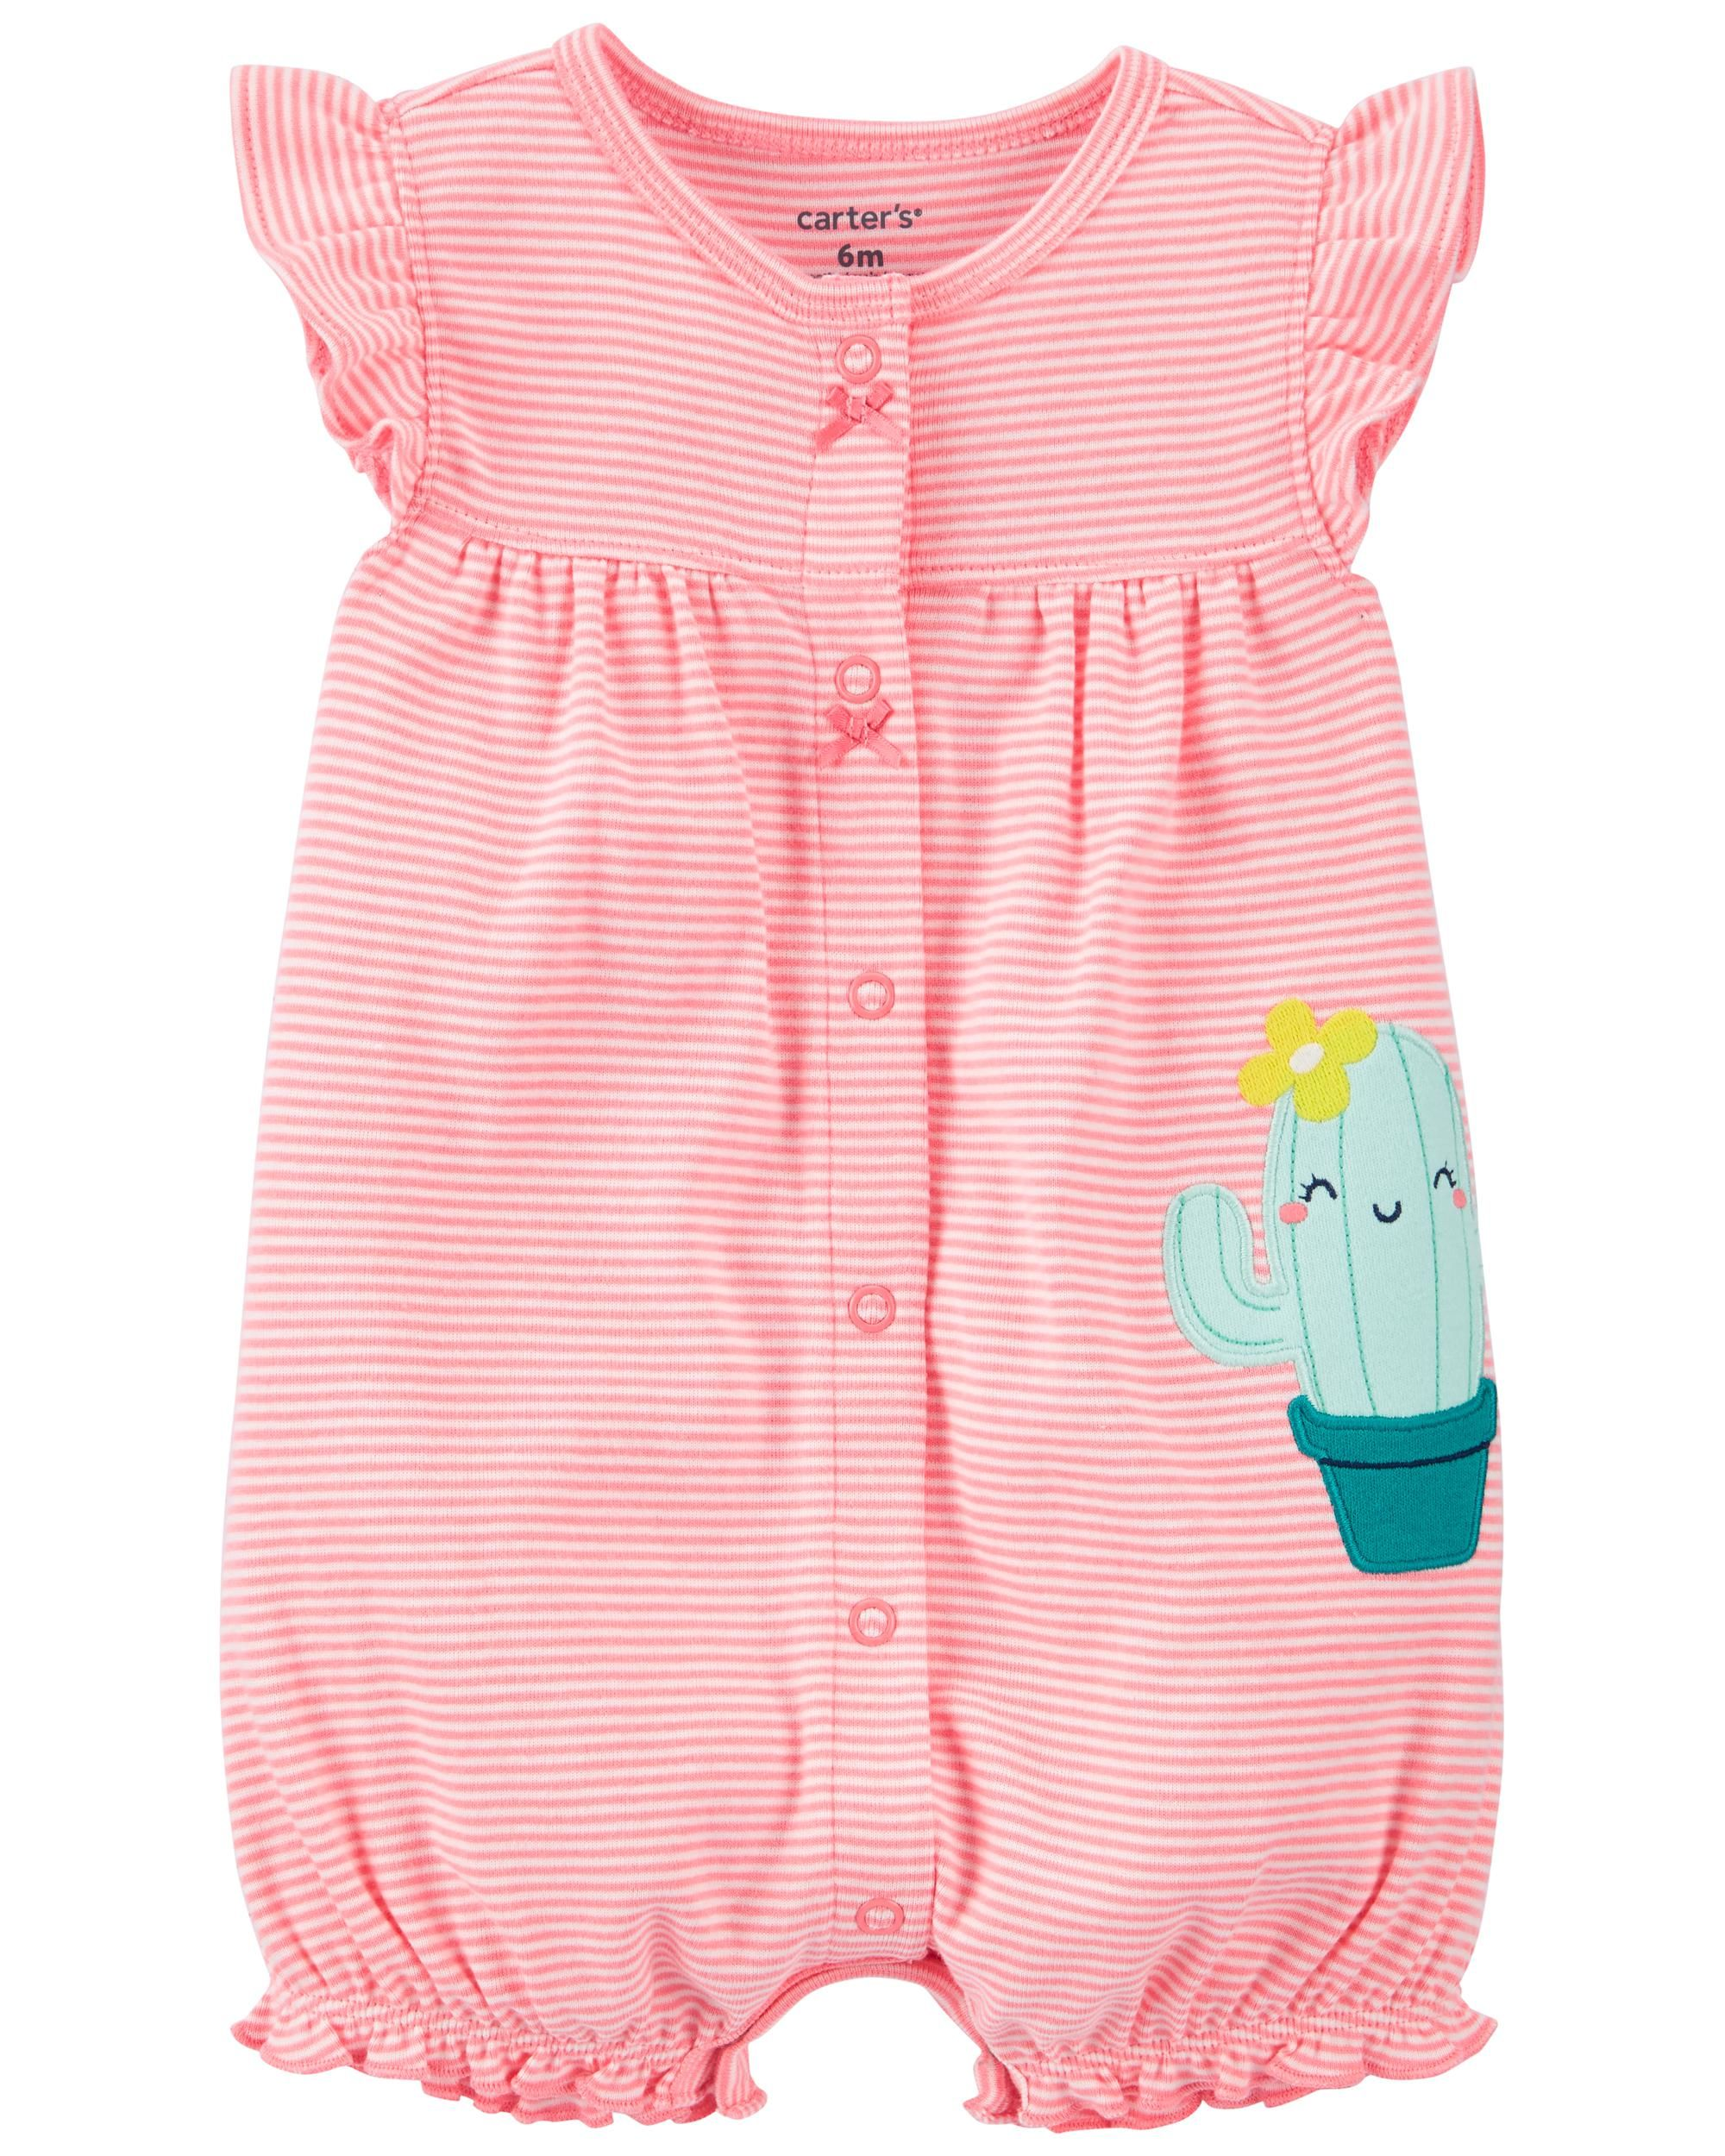 Cactus Snap-Up Romper  Carters baby clothes, Carters baby girl